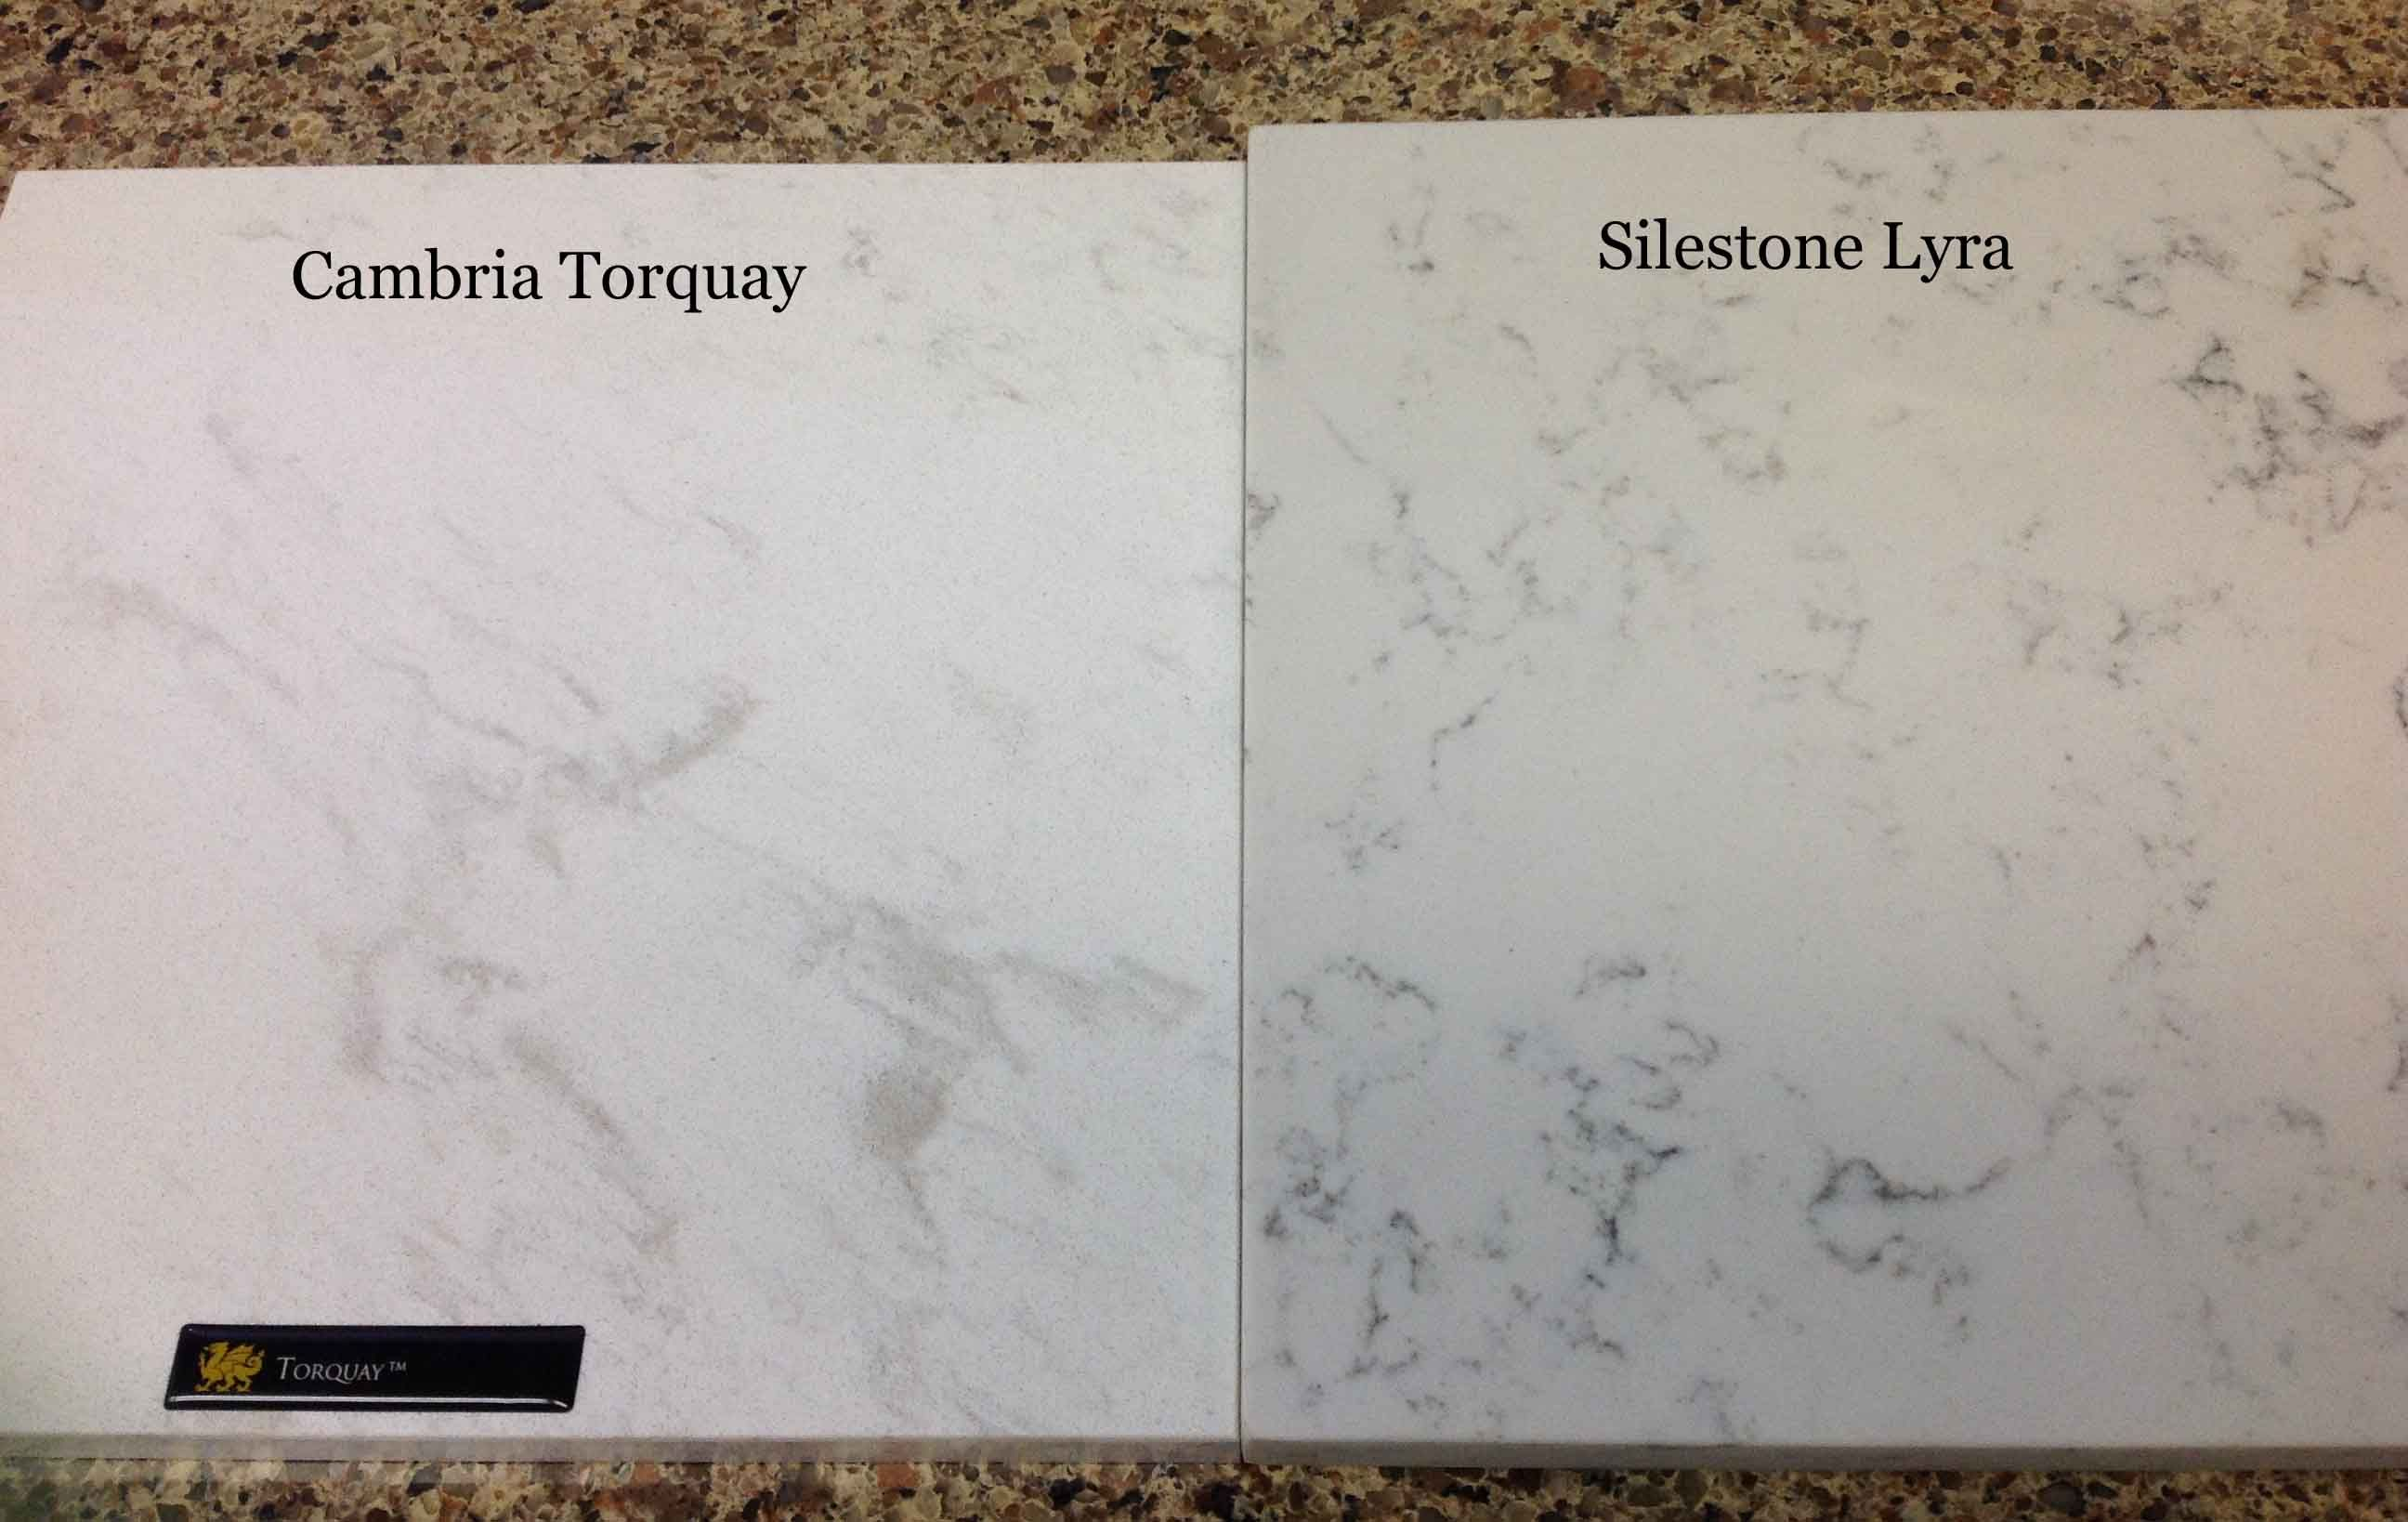 Quartz Countertops More Expensive Than Granite Lyra Silestone Counters Silestone Lyra You Can See